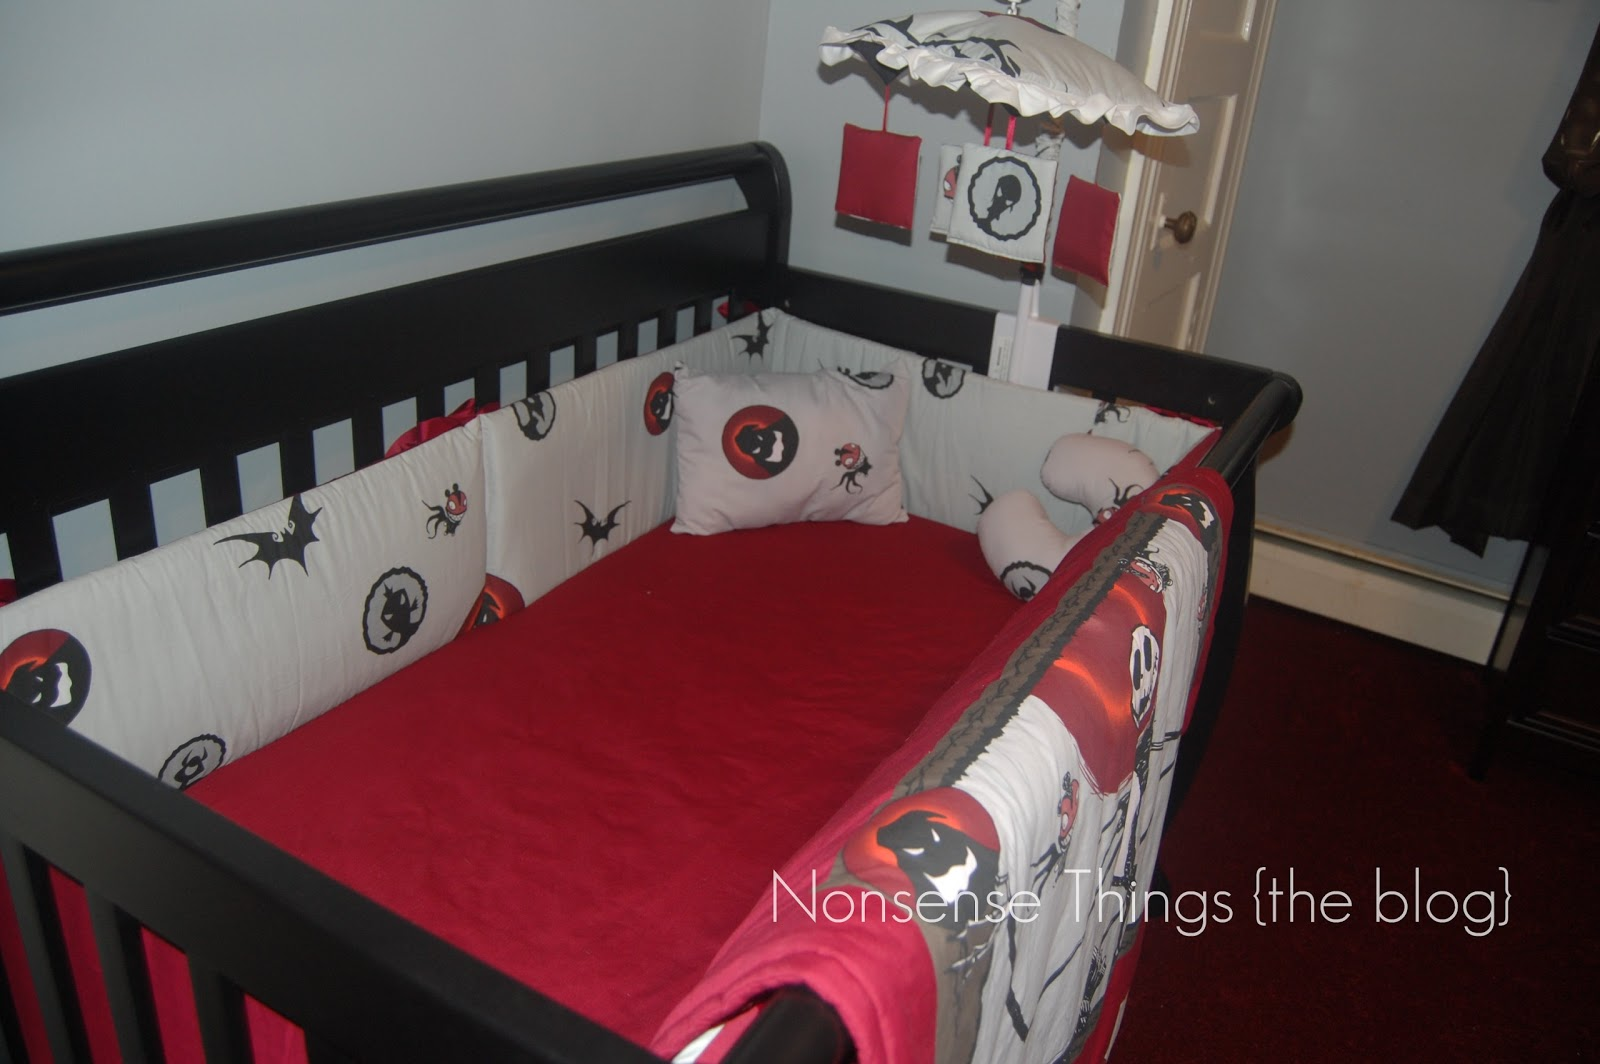 ... nursery sets and that is where I got the crib bedding, mobile, hamper